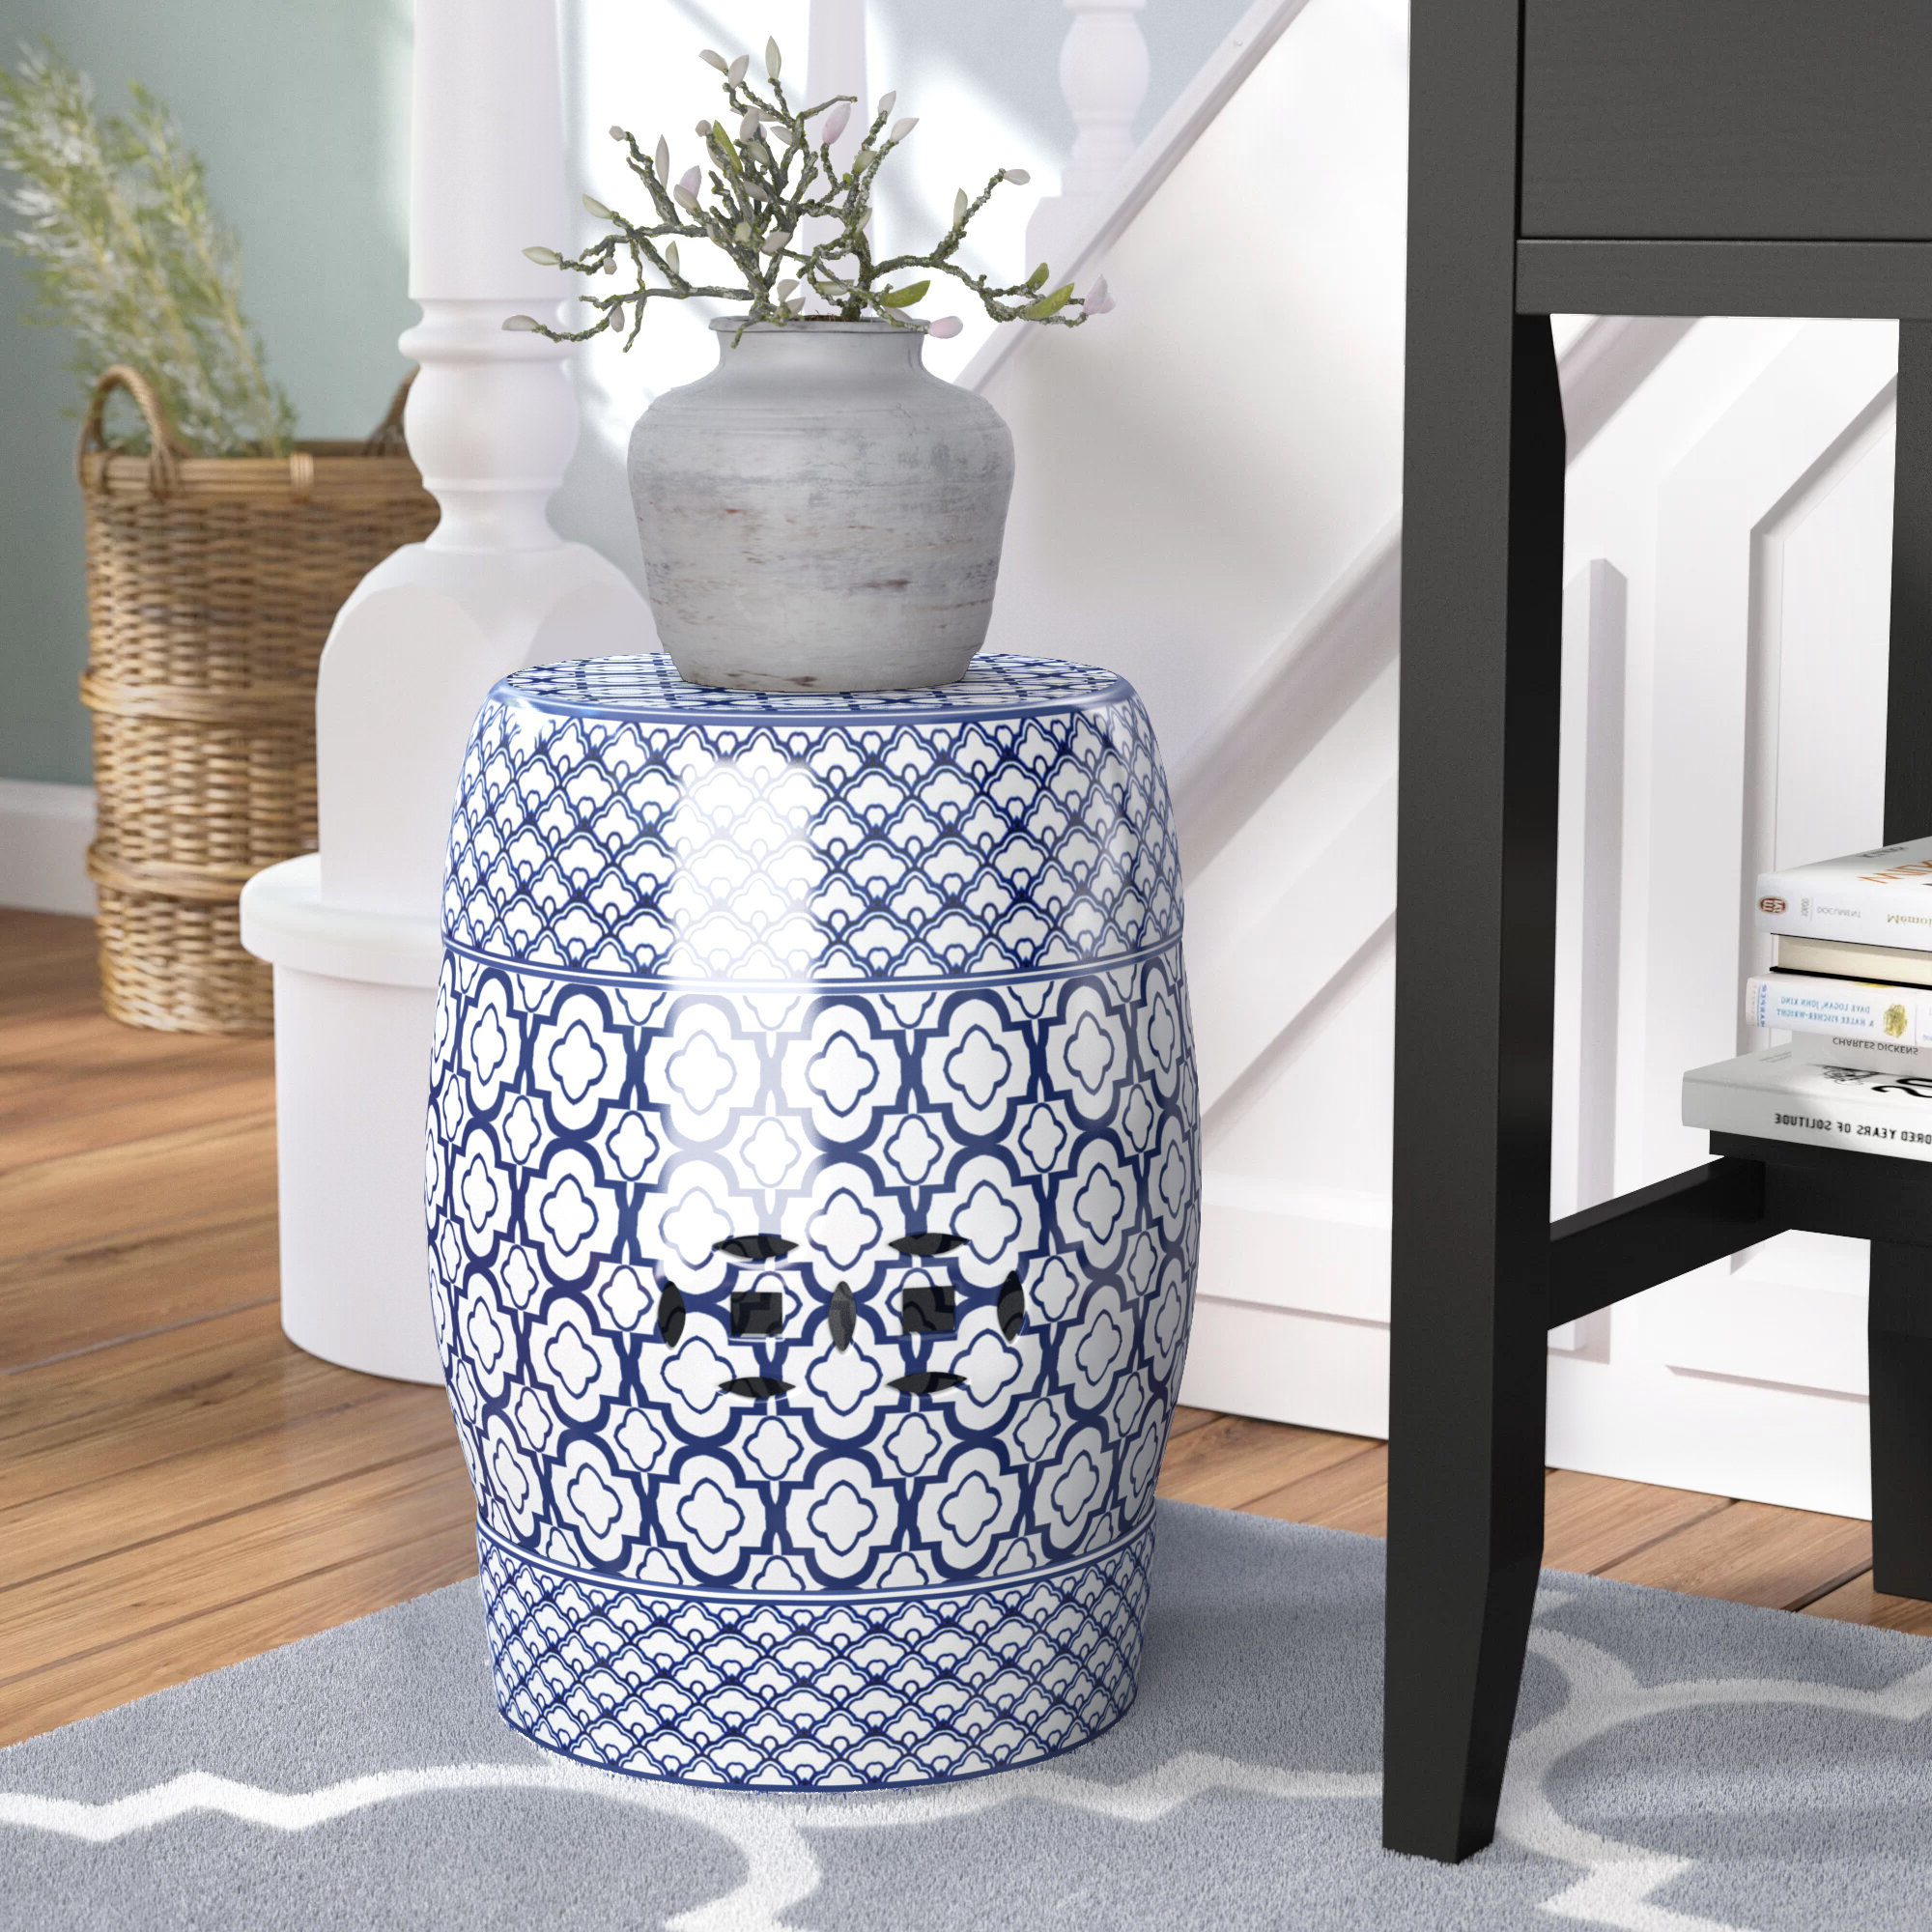 Engelhardt Ceramic Garden Stools Inside Famous Ceramic Garden Accent Stools You'll Love In (View 3 of 30)